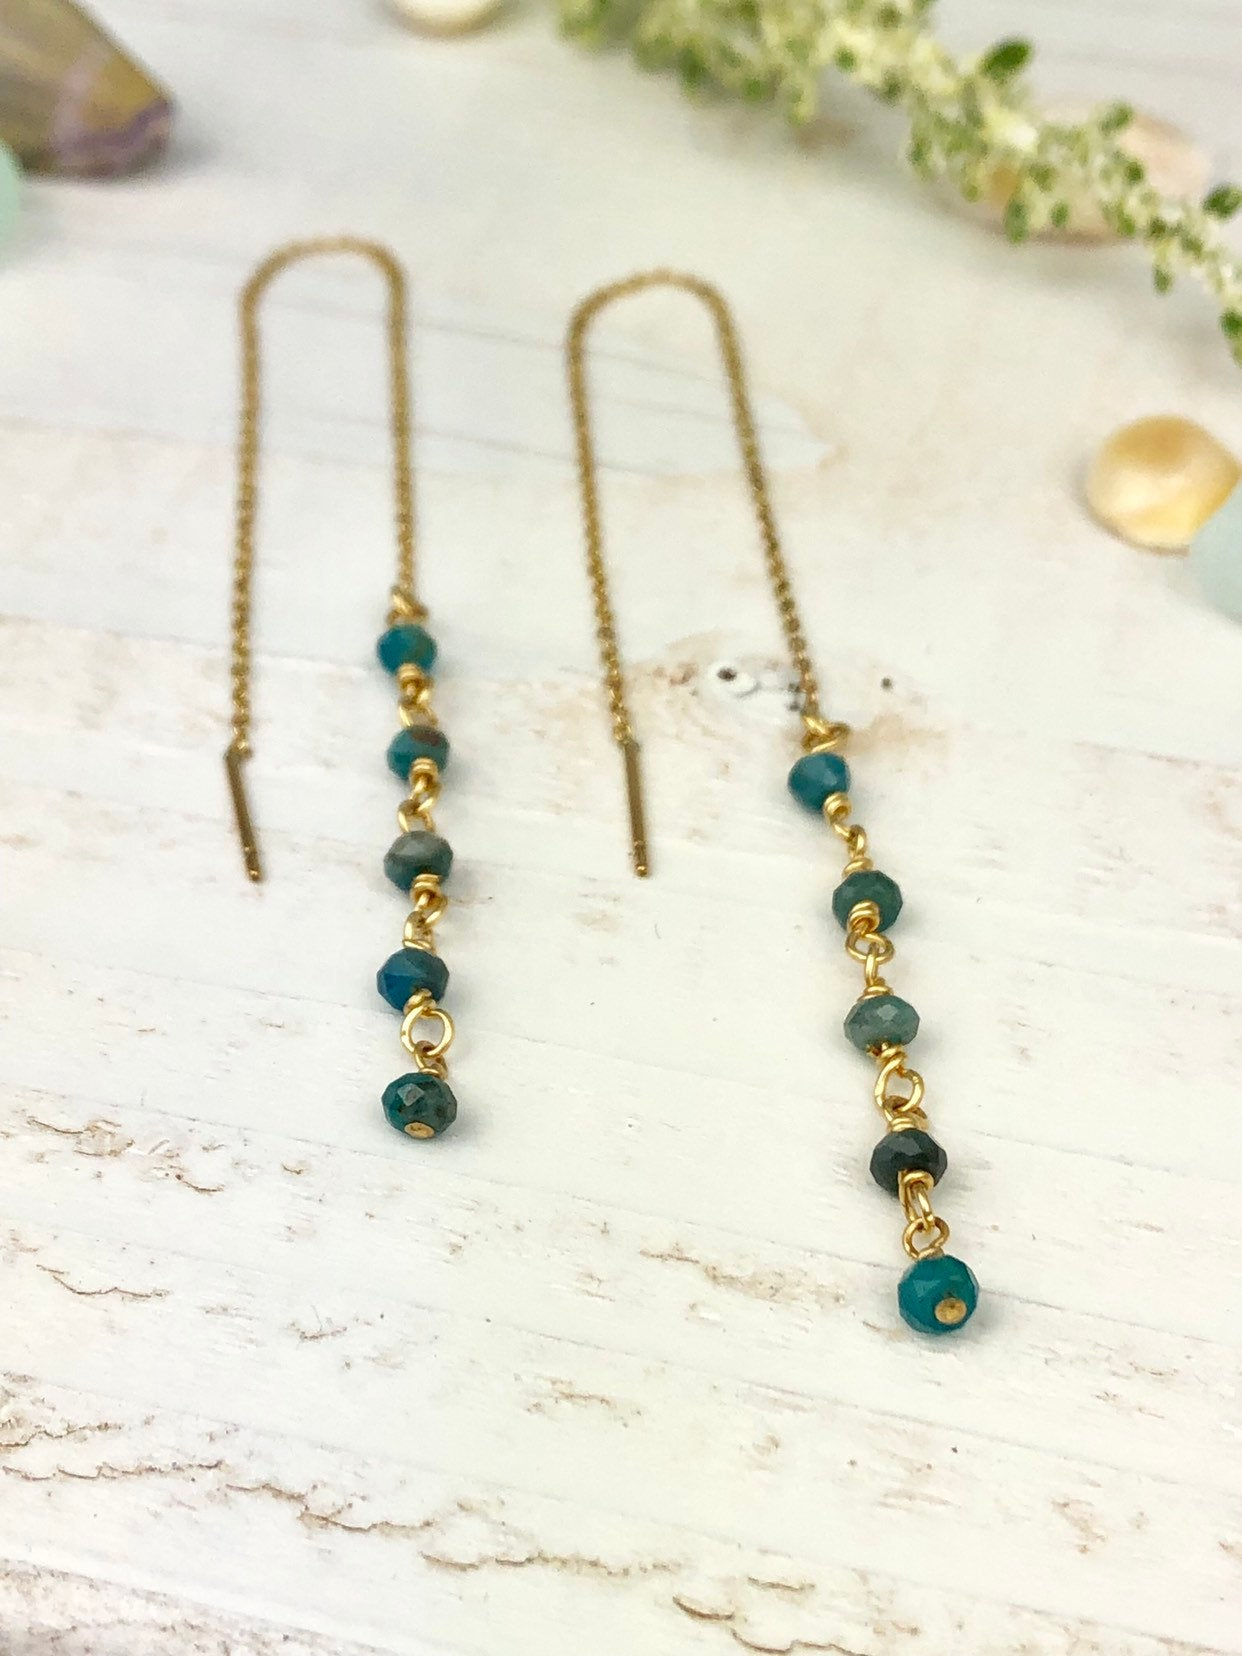 Gold Filled Threader Earrings Appatite Gemstone